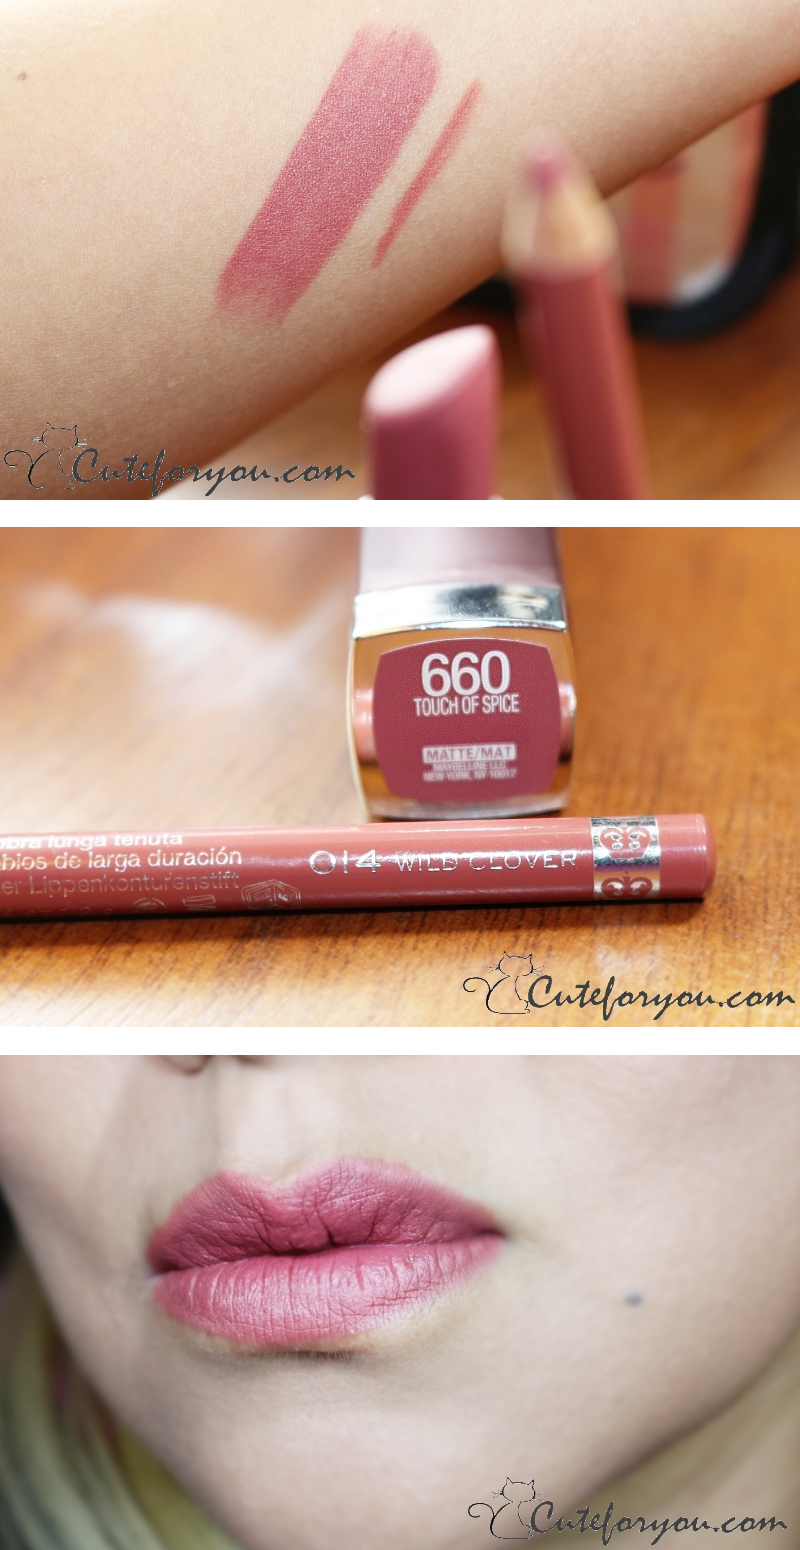 touch of spice maybelline, color sensational matte maybelline, kylie jenner lip, maybelline lipstickc, batom, beauty blogger argentina, batom, maquillaje, makeup